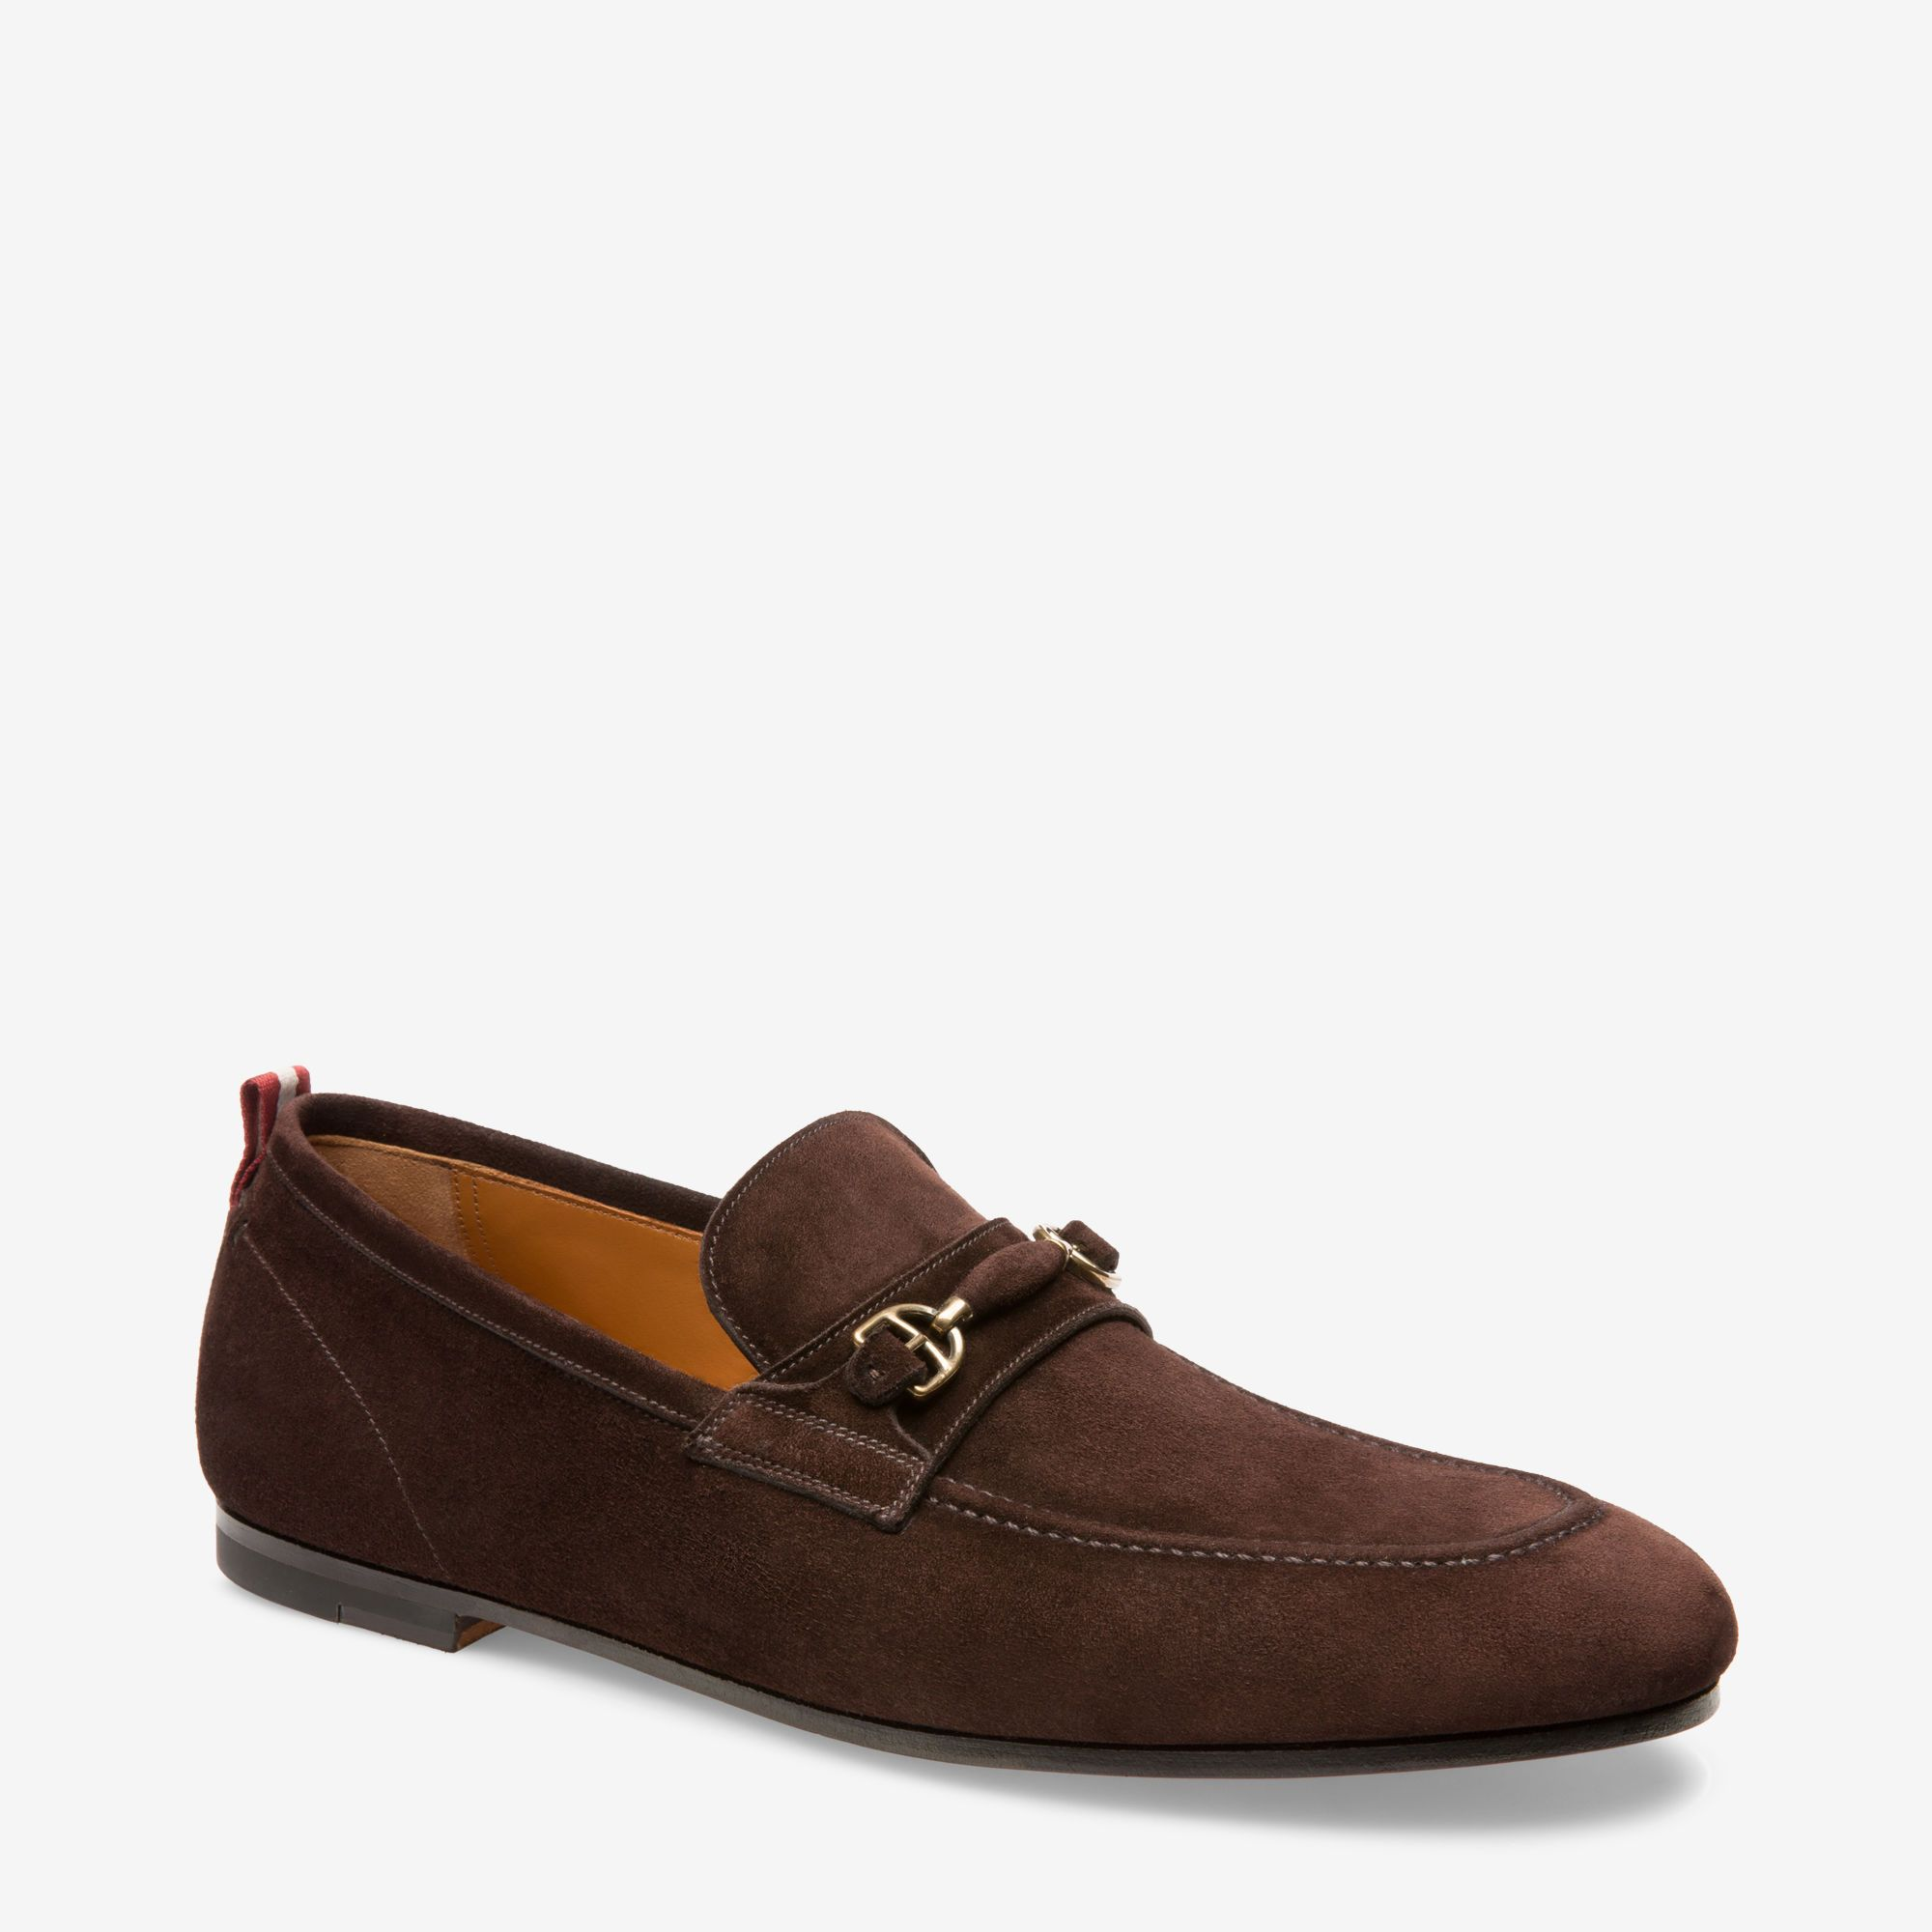 BALLY PLINTOR - CALF SUEDE HORSEBIT LOAFER - COFFEE - Ninostyle